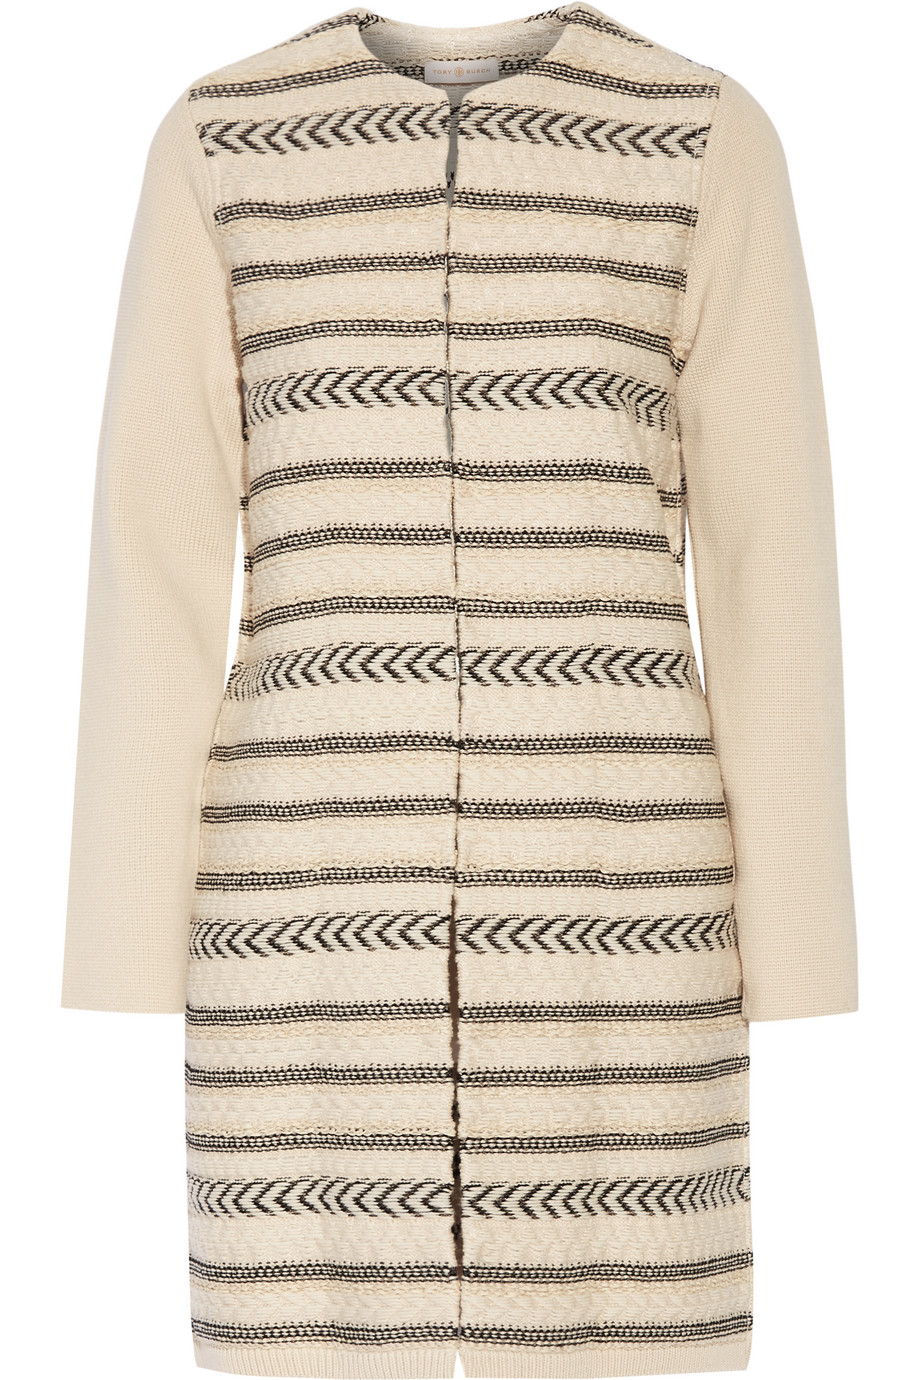 Tory Burch Paneled Wool-Blend Jacquard-Knit Coat, Beige, Women's, Size: M